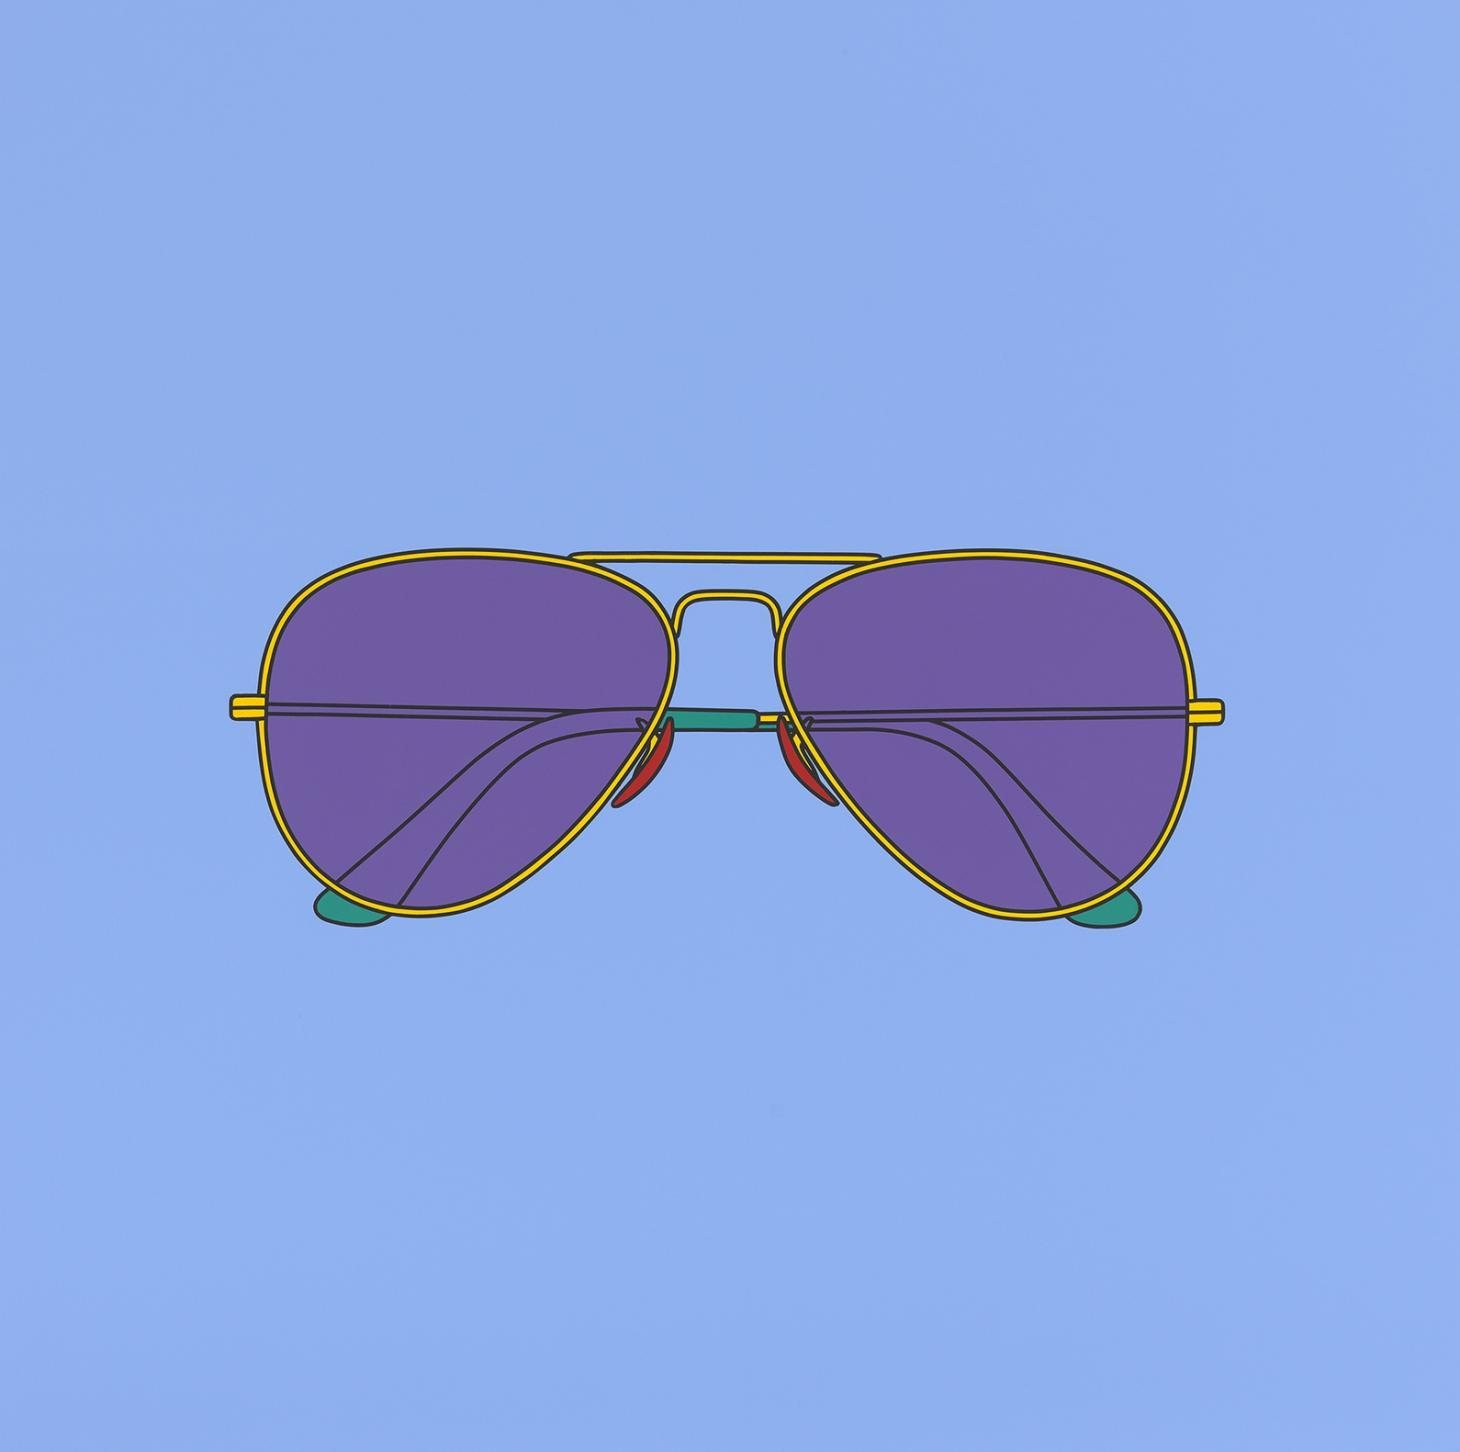 Untitled sunglasses by Michael Craig Martin, 2018